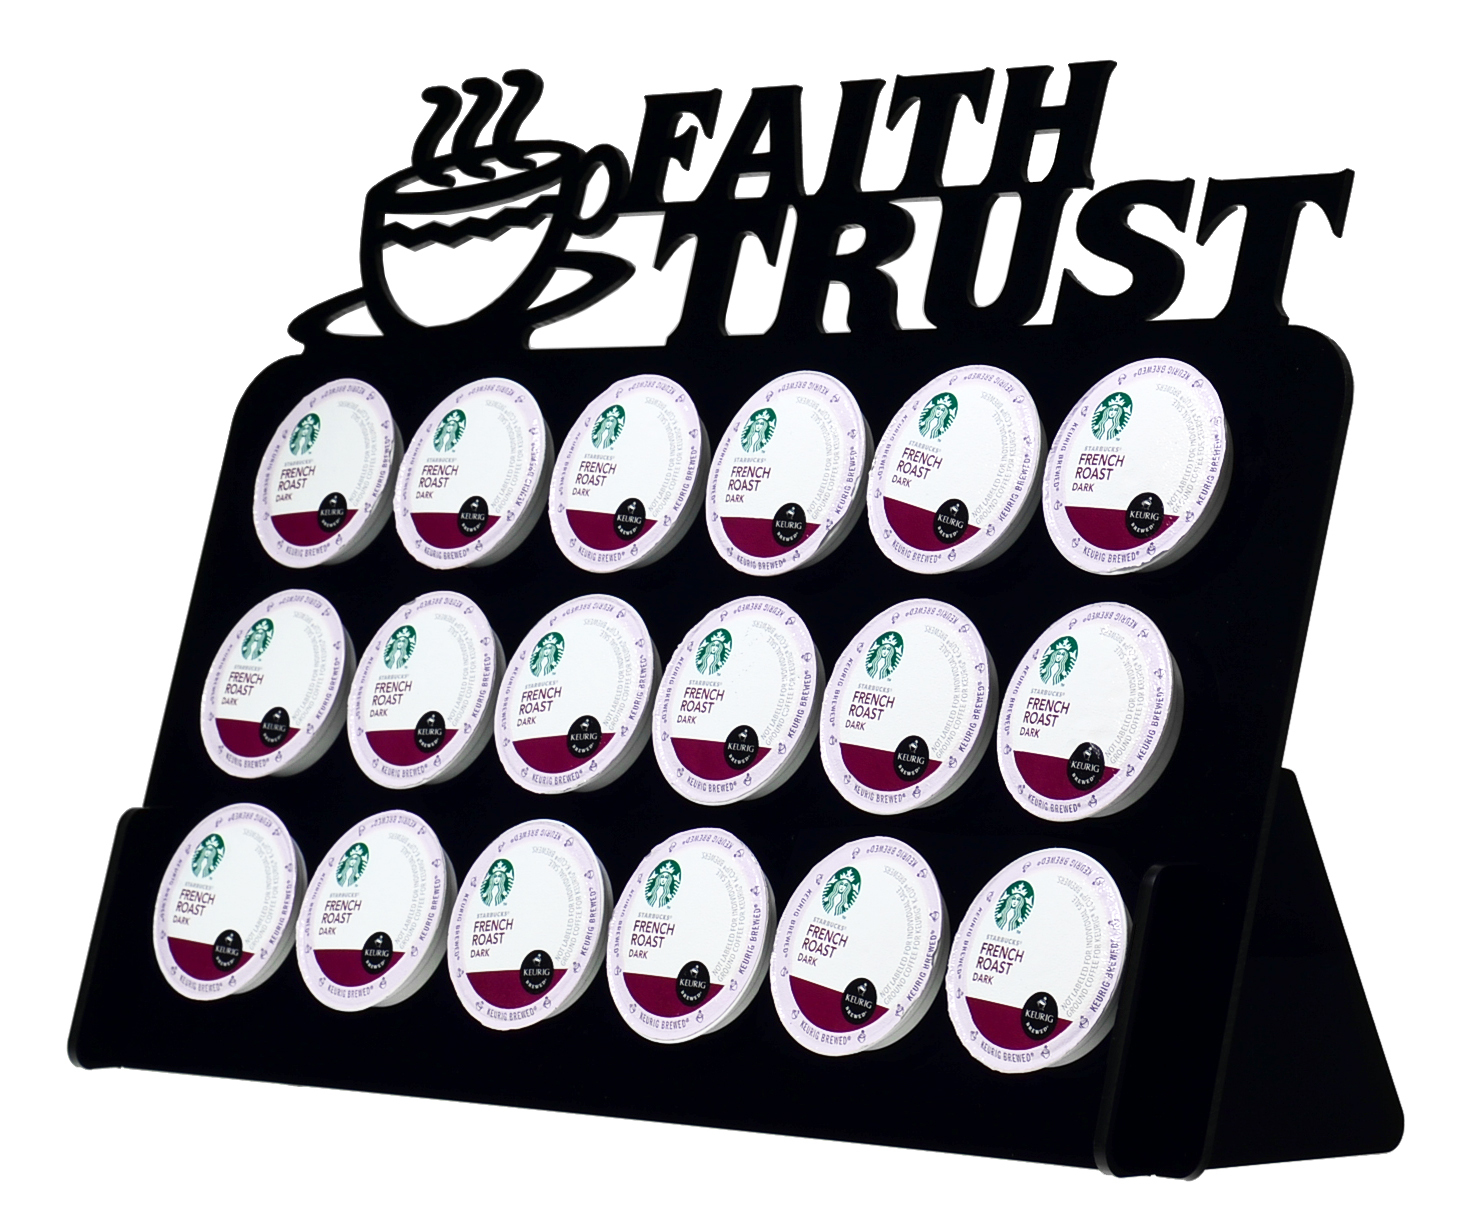 Religious Coffee Pod Holders